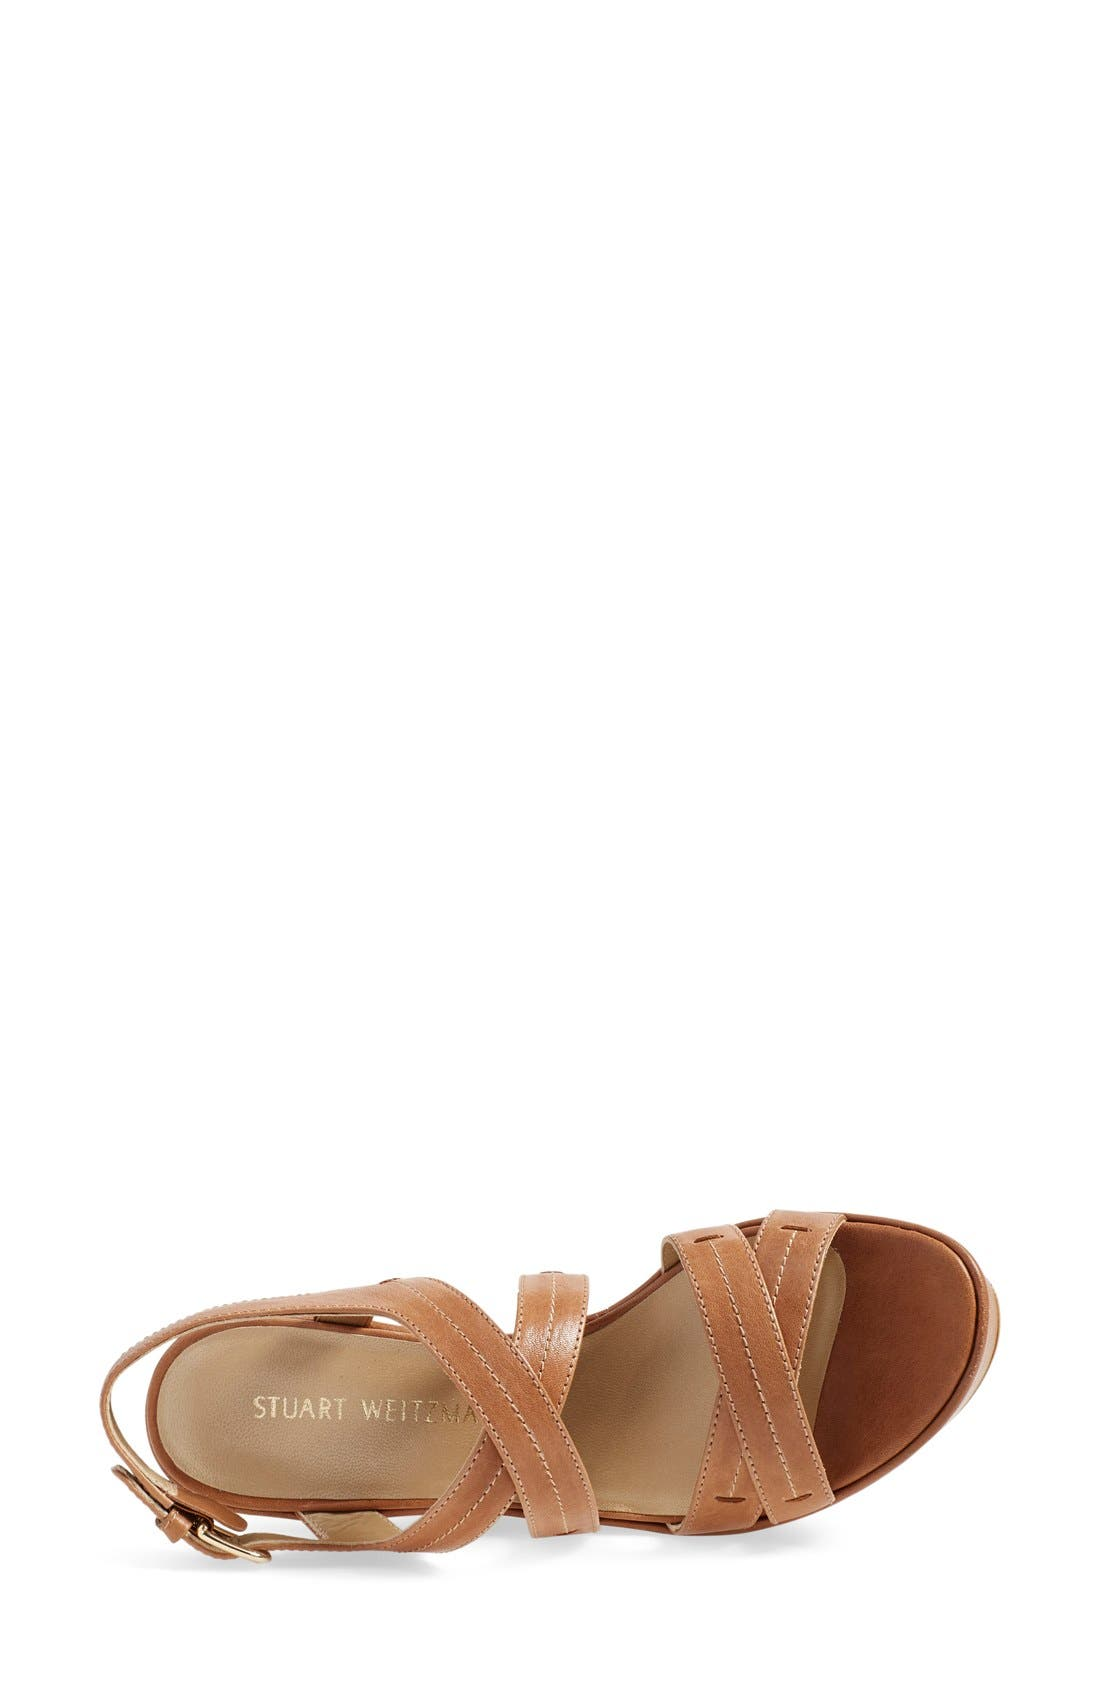 Alternate Image 3  - Stuart Weitzman 'Doublexing' Wedge Sandal (Women)